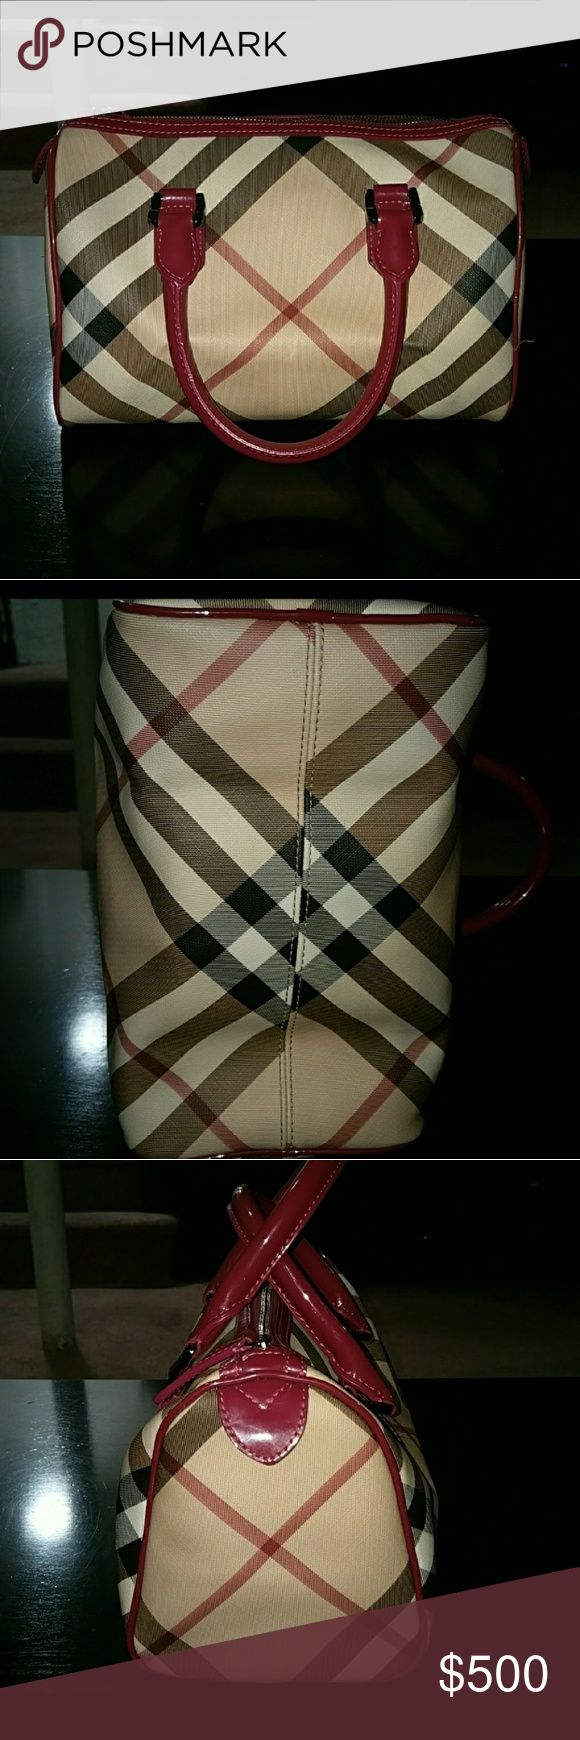 Burberry bowling bag Beautiful original checker print Burberry bowling bag with redish pink handles. Super clean. Absolutely no marks, scuffs, scratches, or dirty. Used twice. 100% authentic. comes with dust bag. Burberry Bags